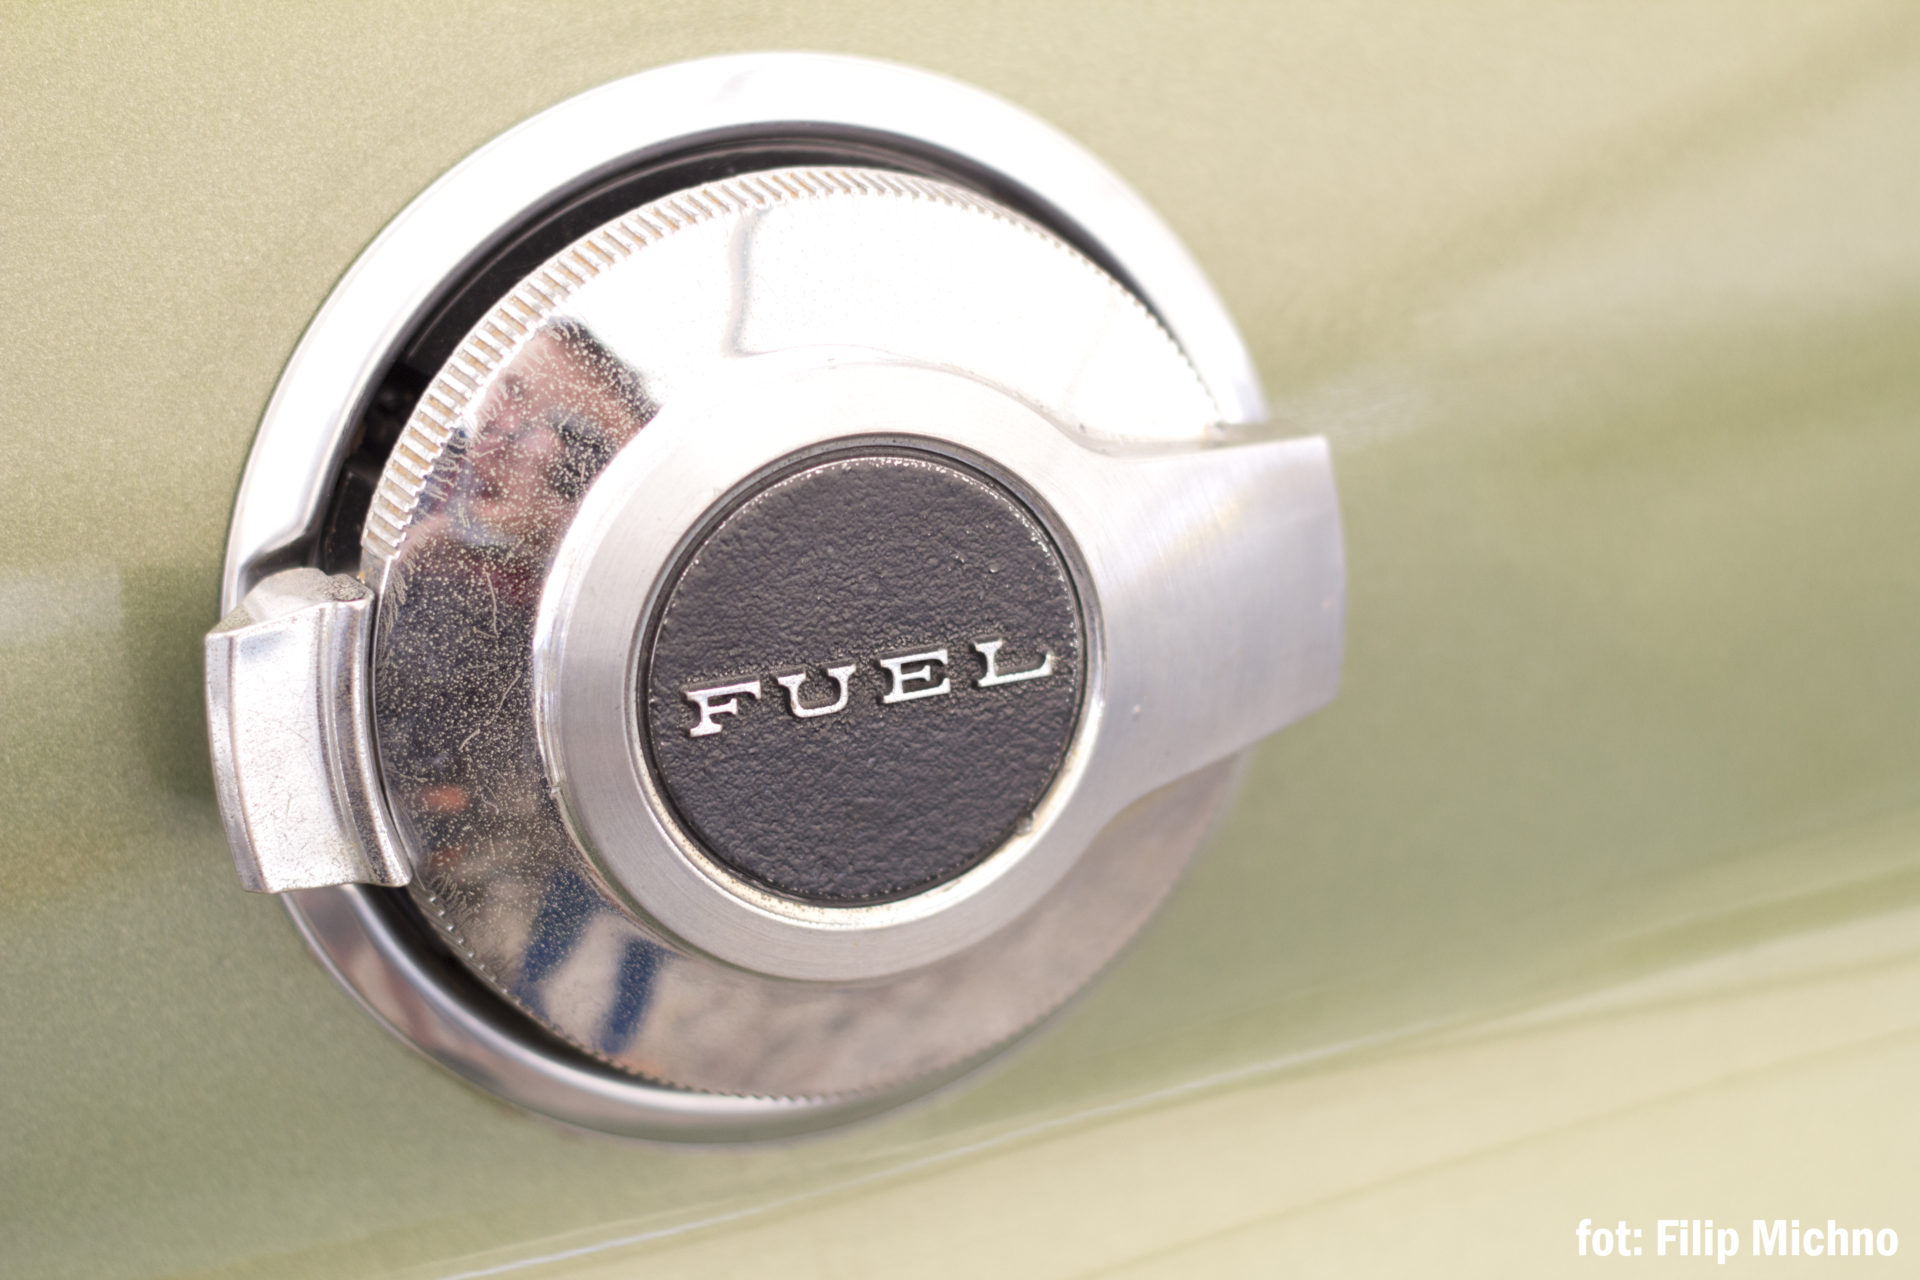 Ford Mustang Fuel